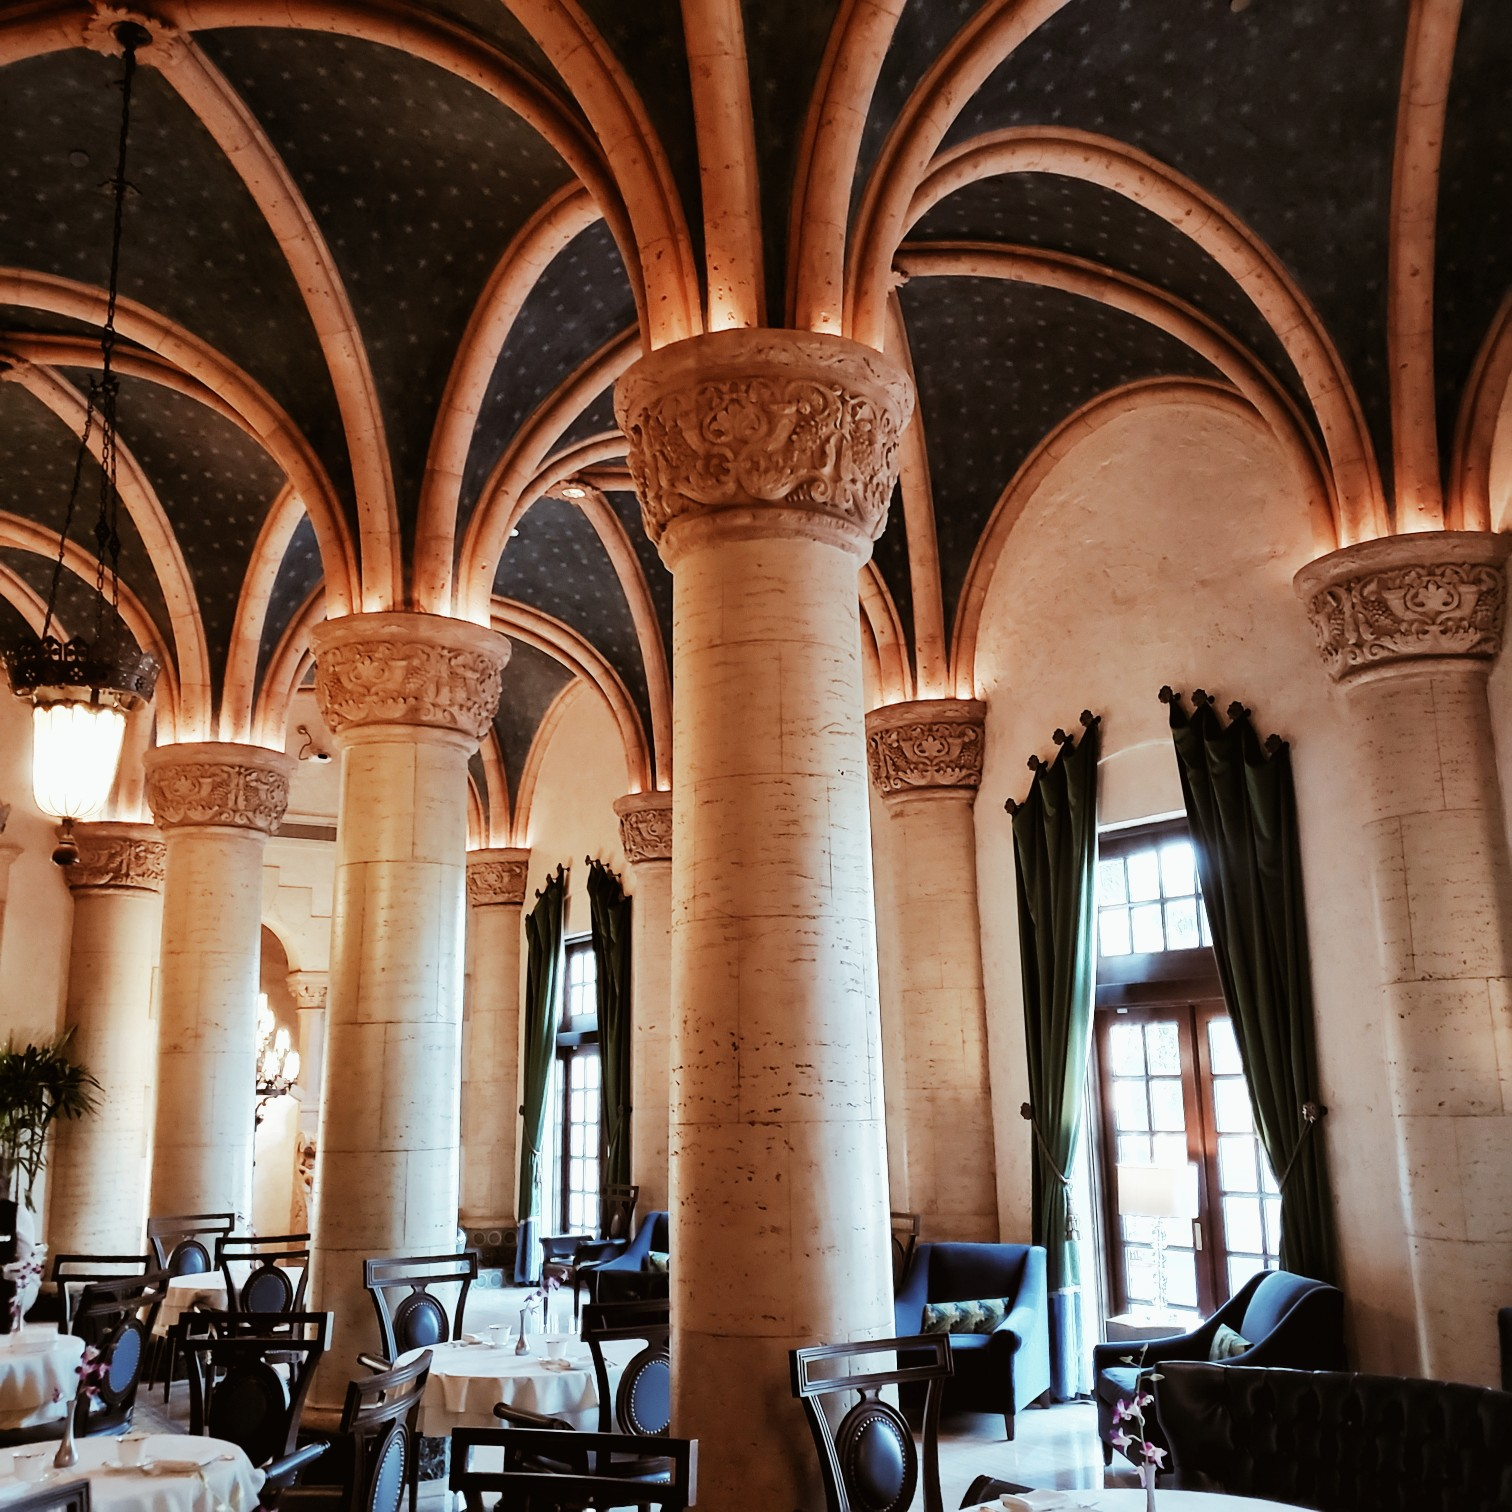 Biltmore Hotel Miami Coral Gables Luxurious Lobby